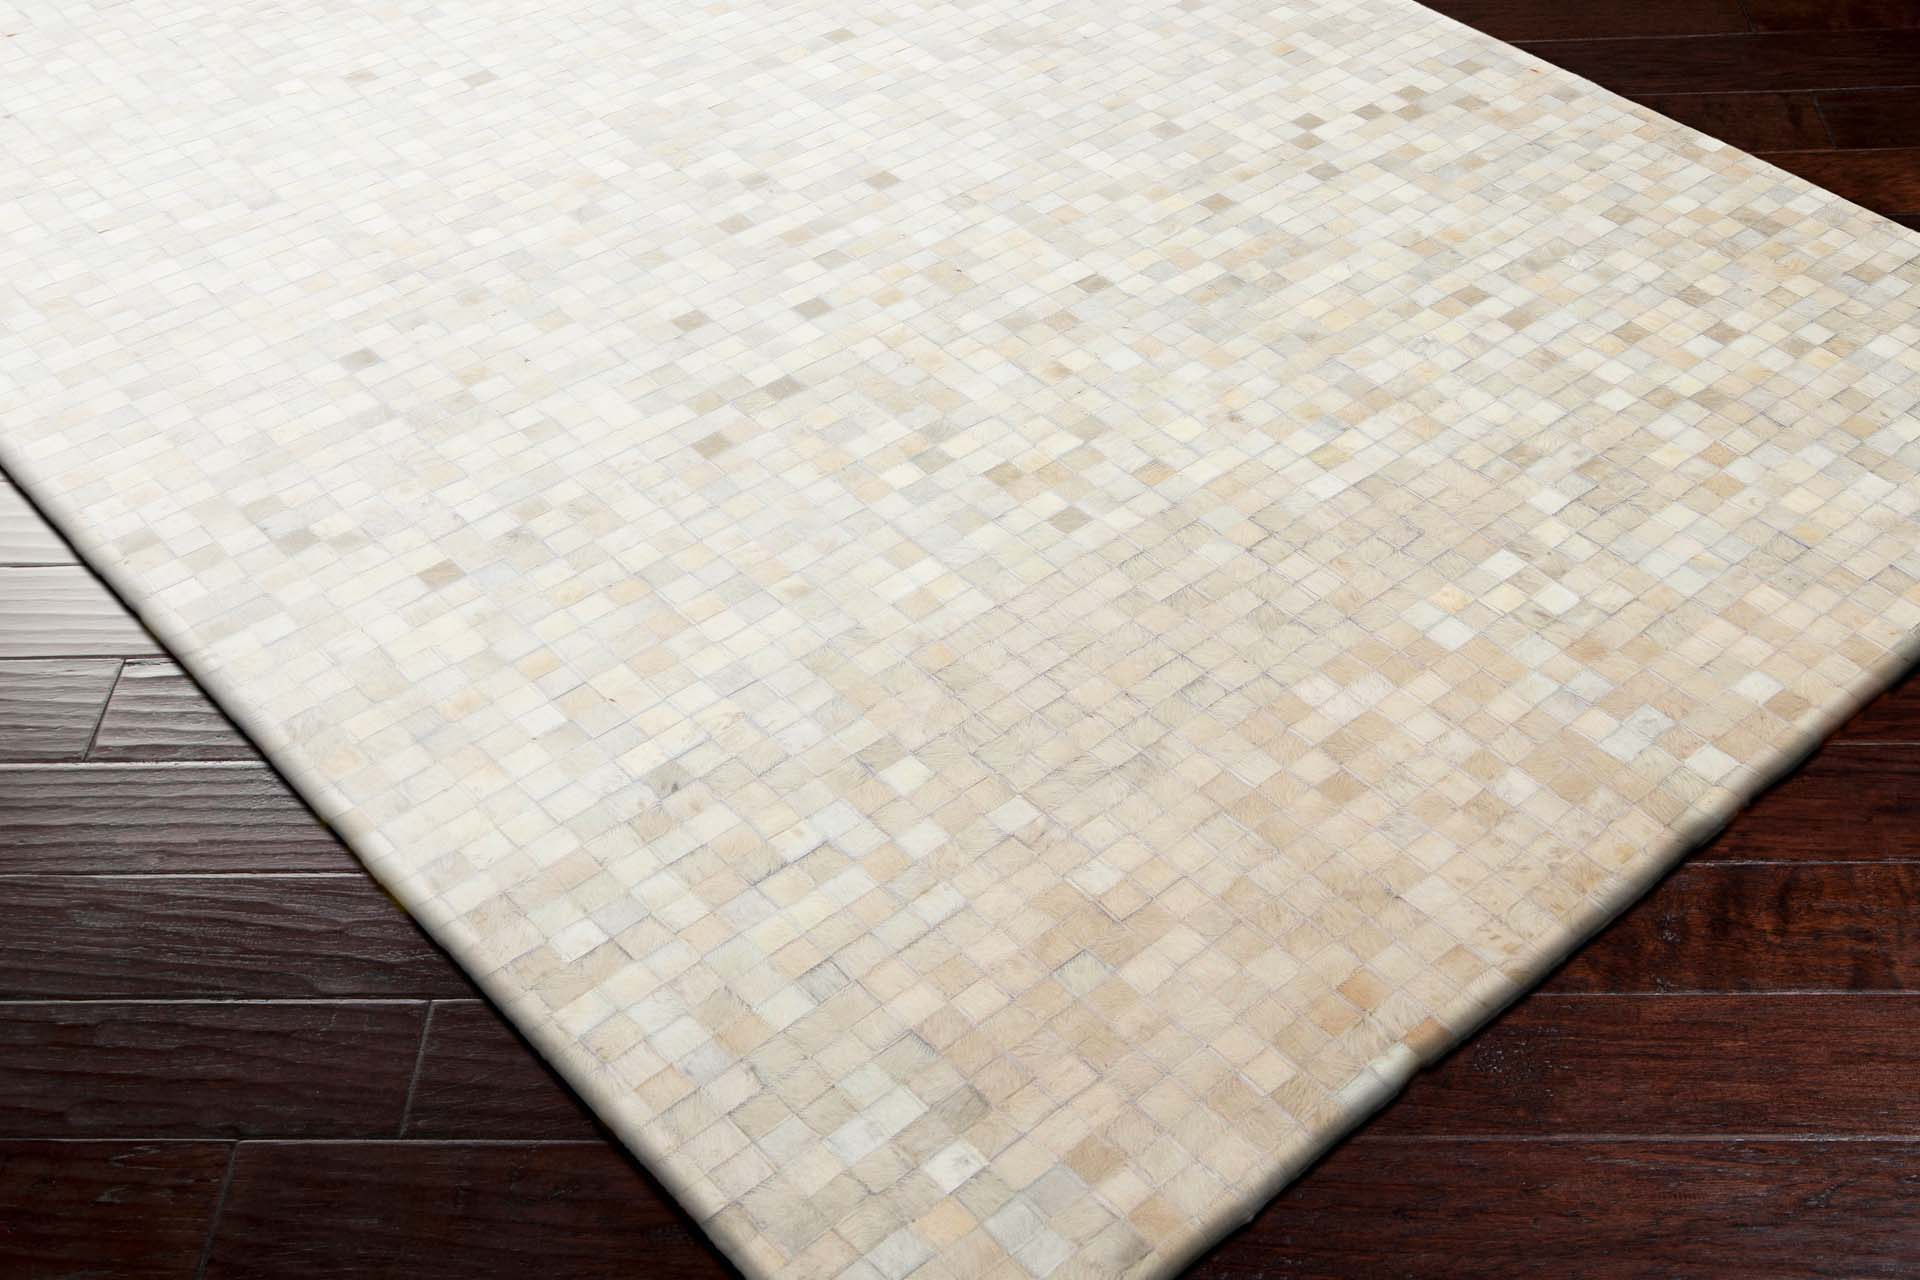 Handcrafted Surya Trail rug featuring Hair on Hide from India with khaki, ivory and beige tile pattern overtones.